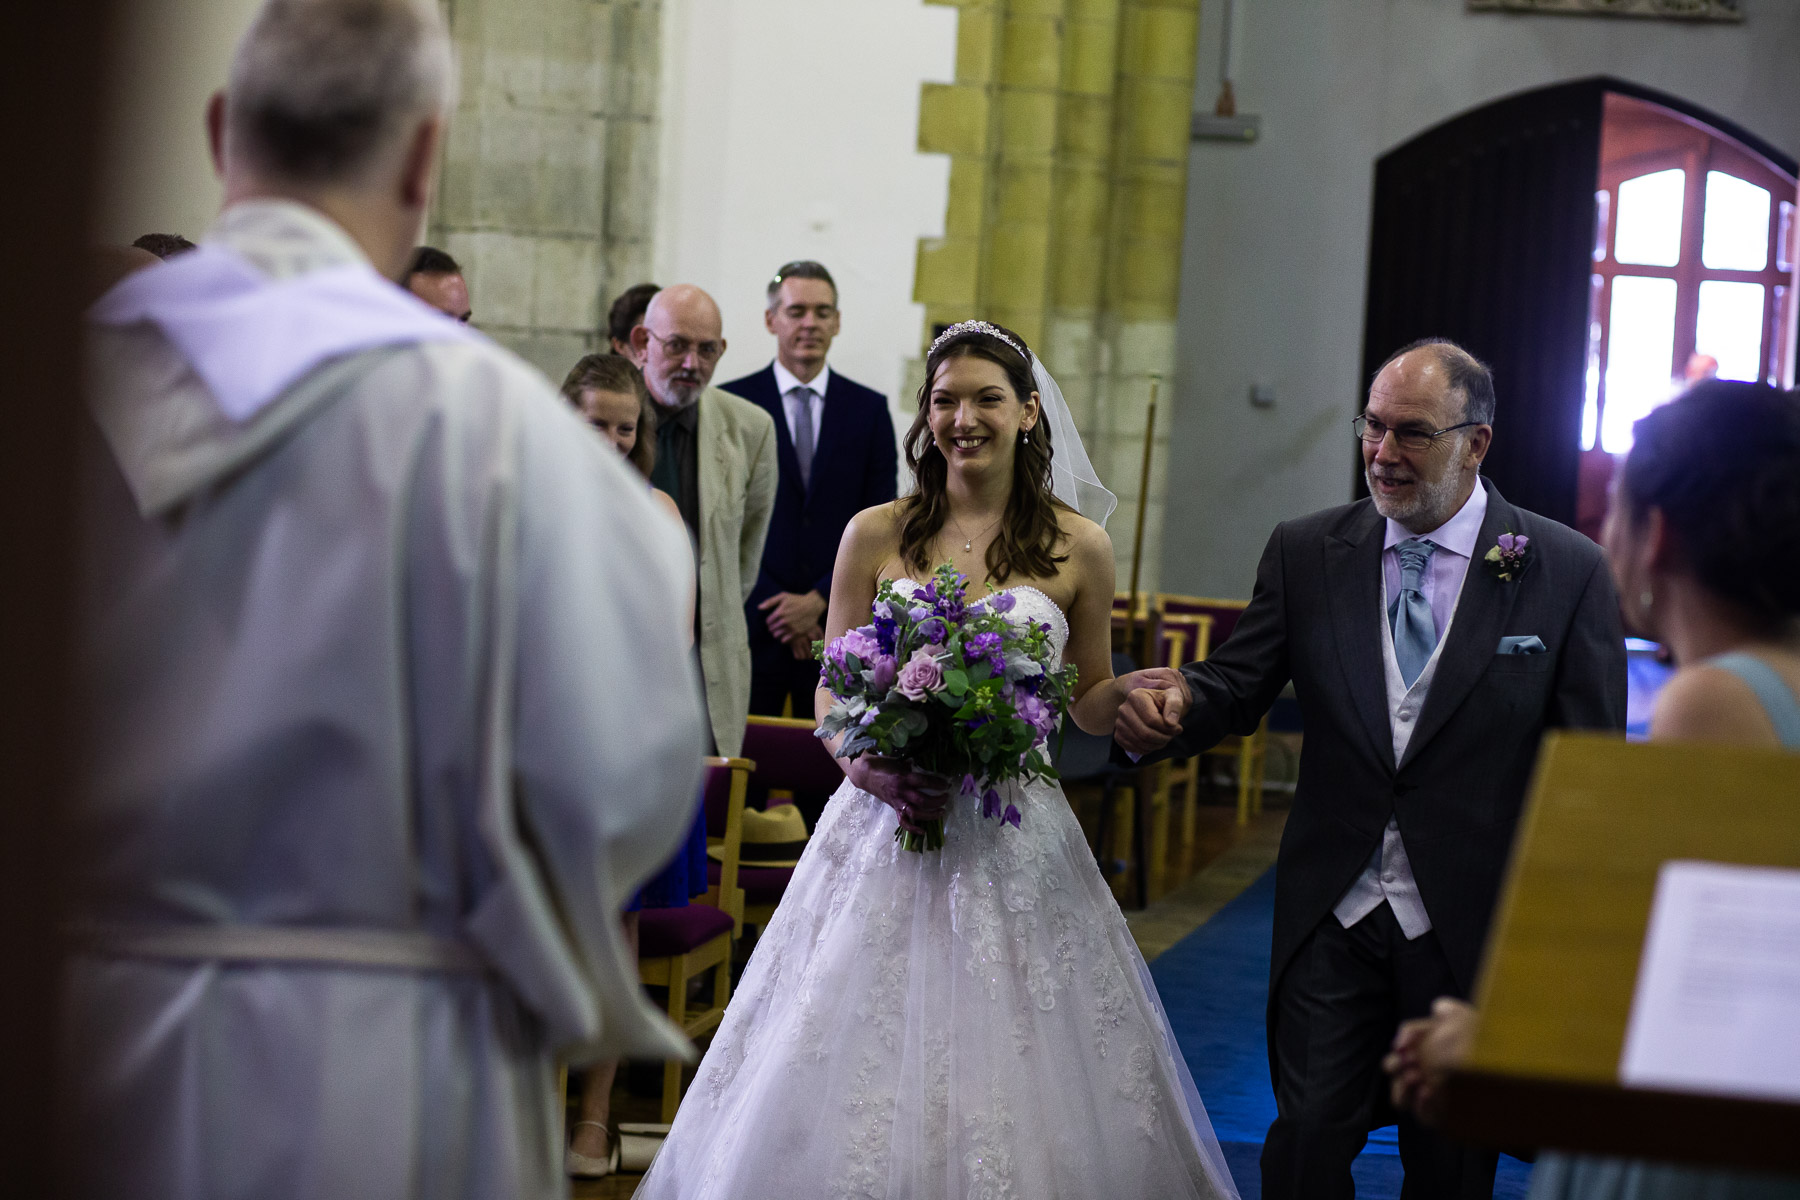 Relaxed bride and father walking down the aisle